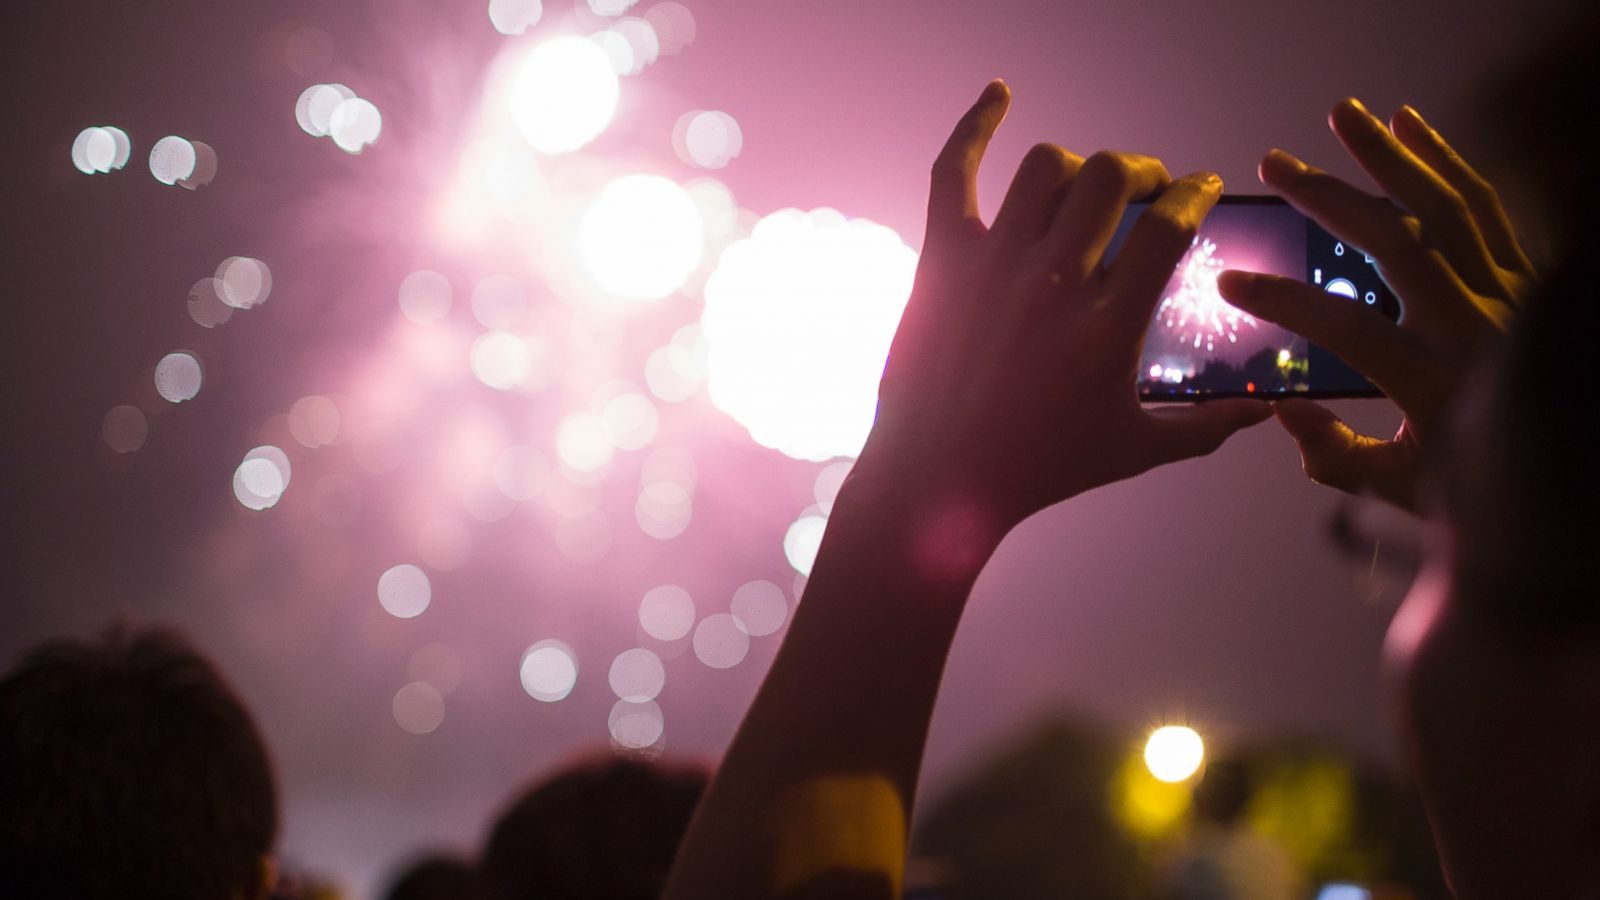 Tips For Capturing Instagram Worthy 4th Of July Photos